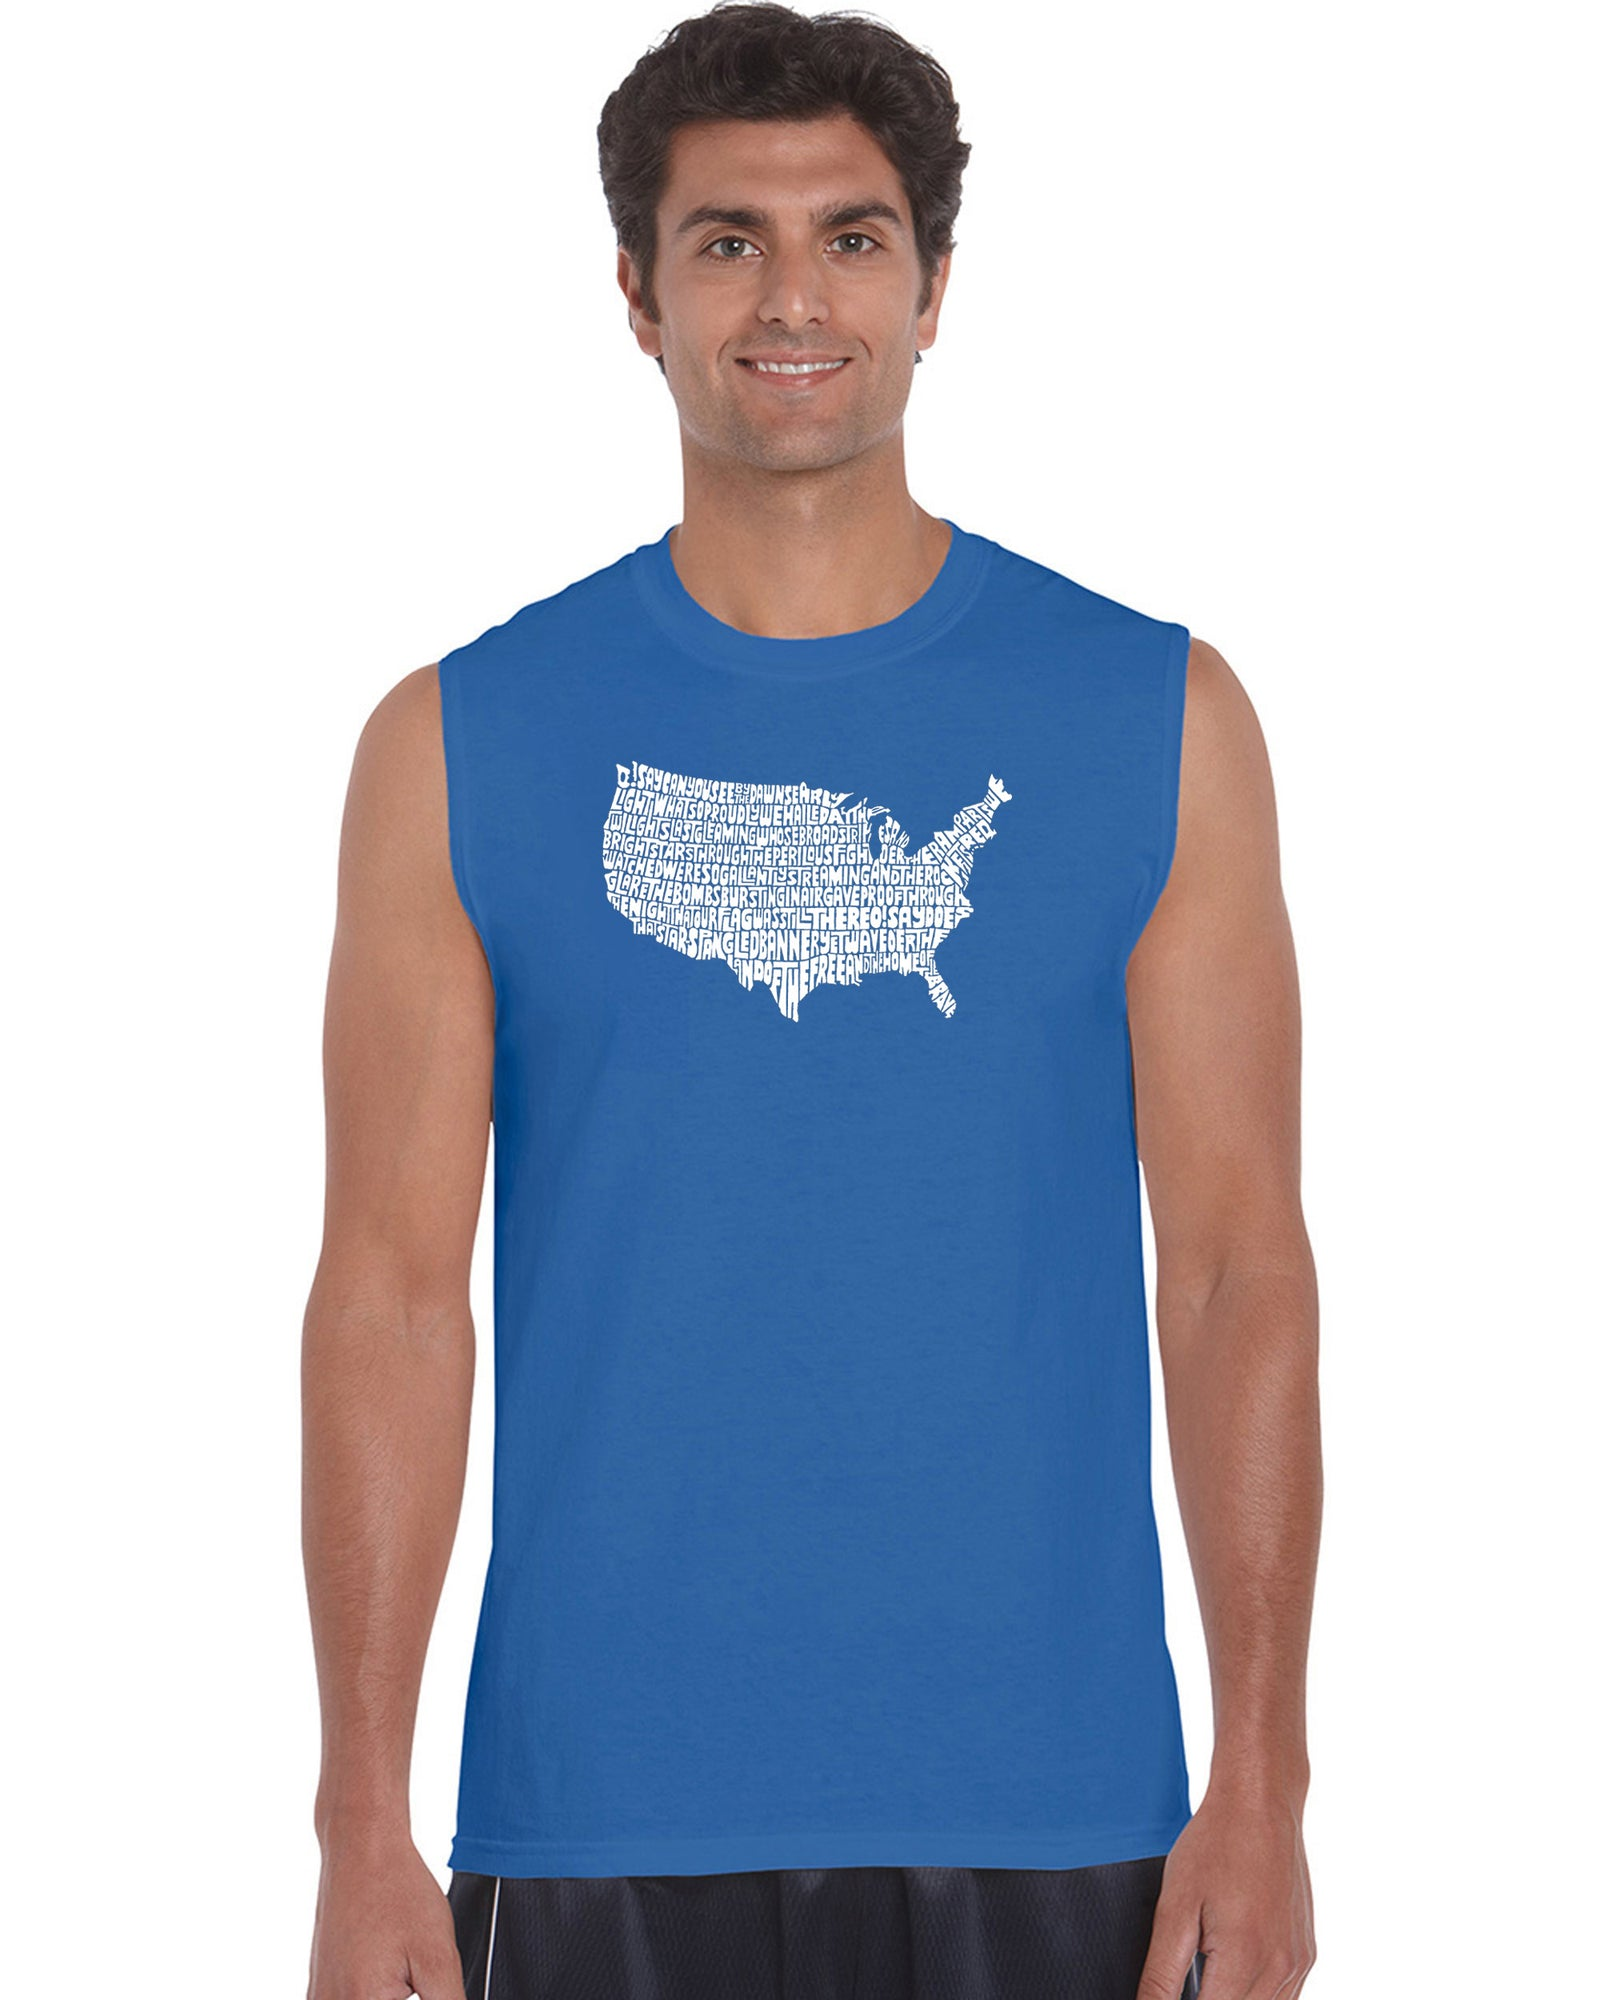 Men's Sleeveless T-shirt - THE STAR SPANGLED BANNER